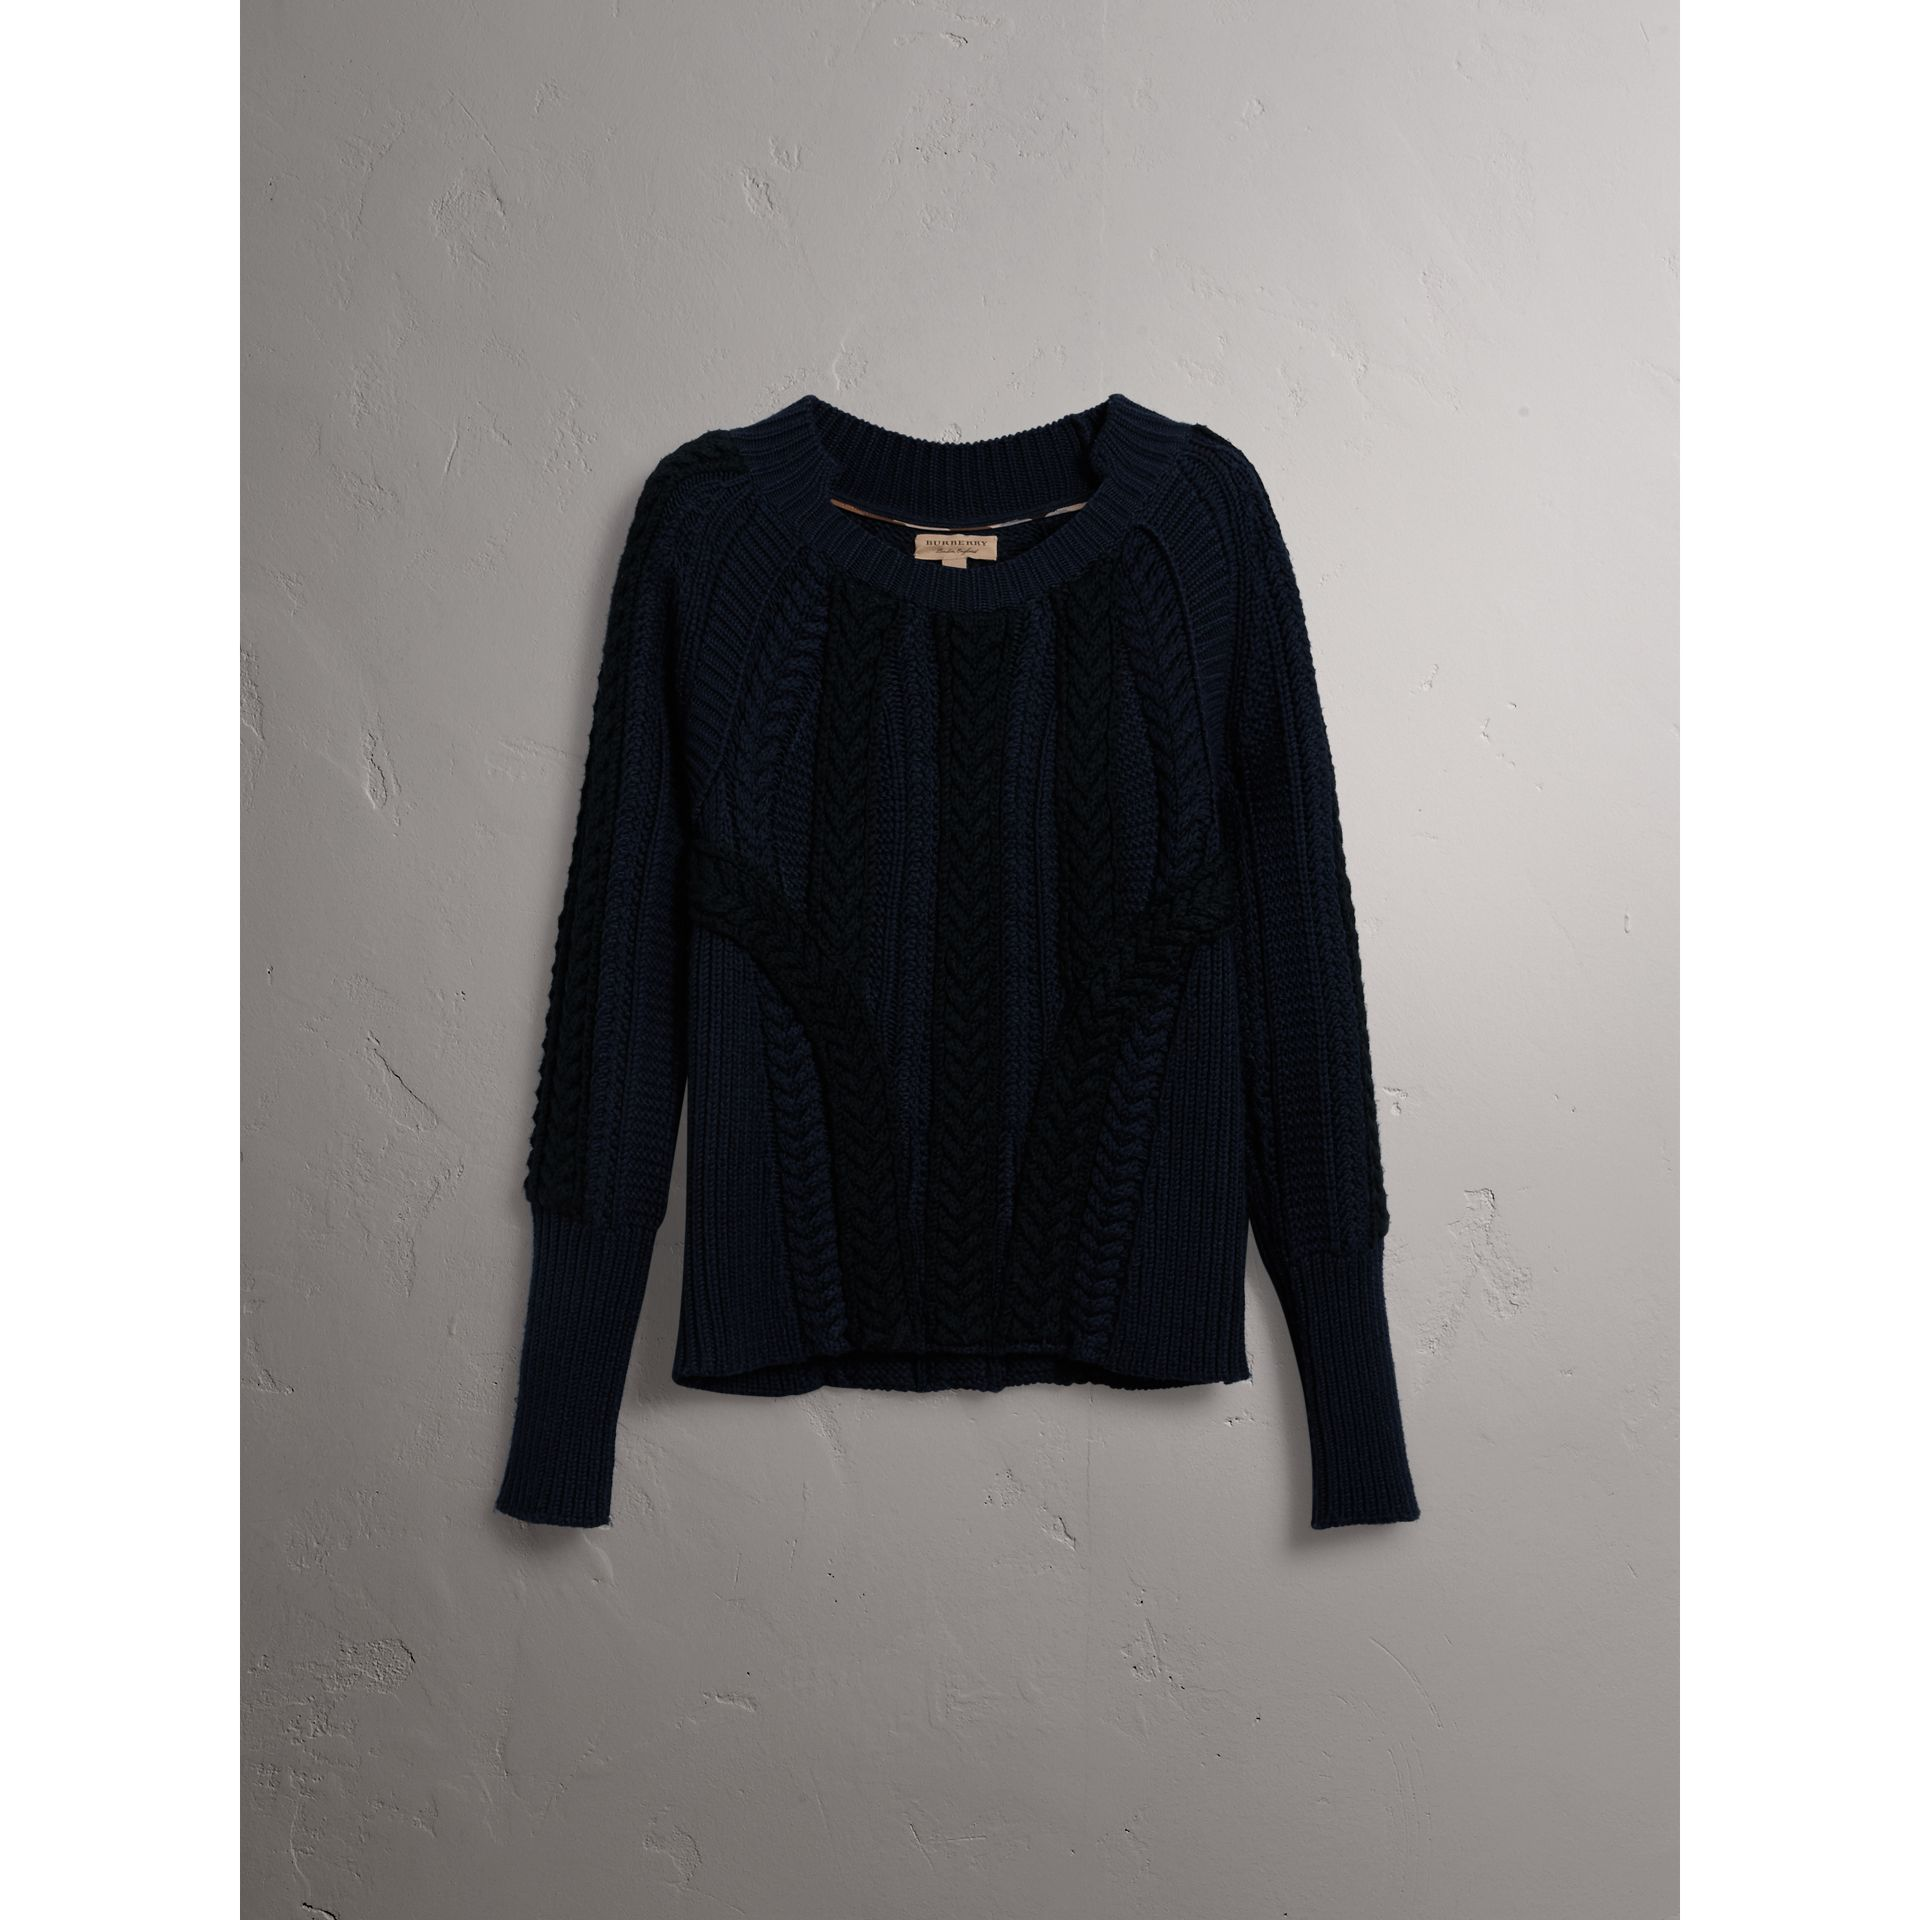 Two-tone Cable Knit Wool Cashmere Sweater in Navy - Women | Burberry United States - gallery image 4